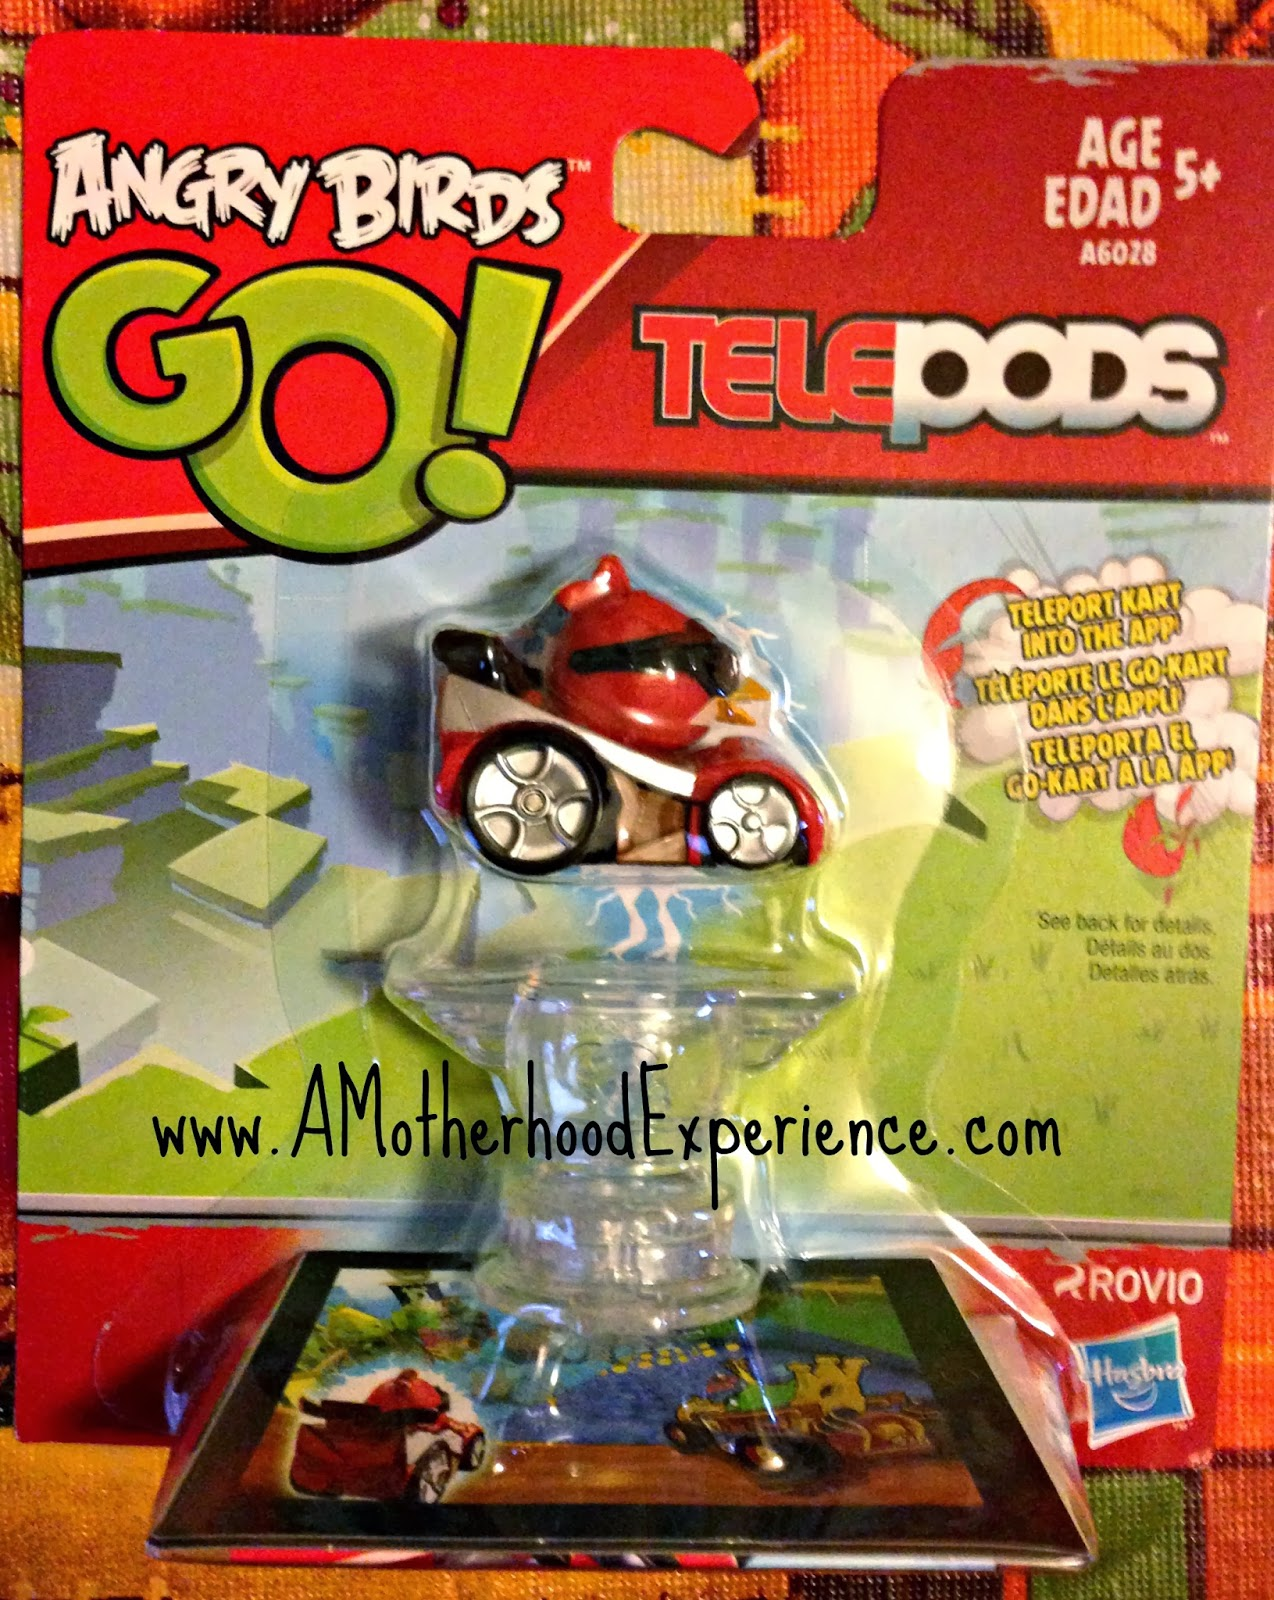 Angry Birds Go Toys : Stuff your stockings with hasbro a motherhood experience